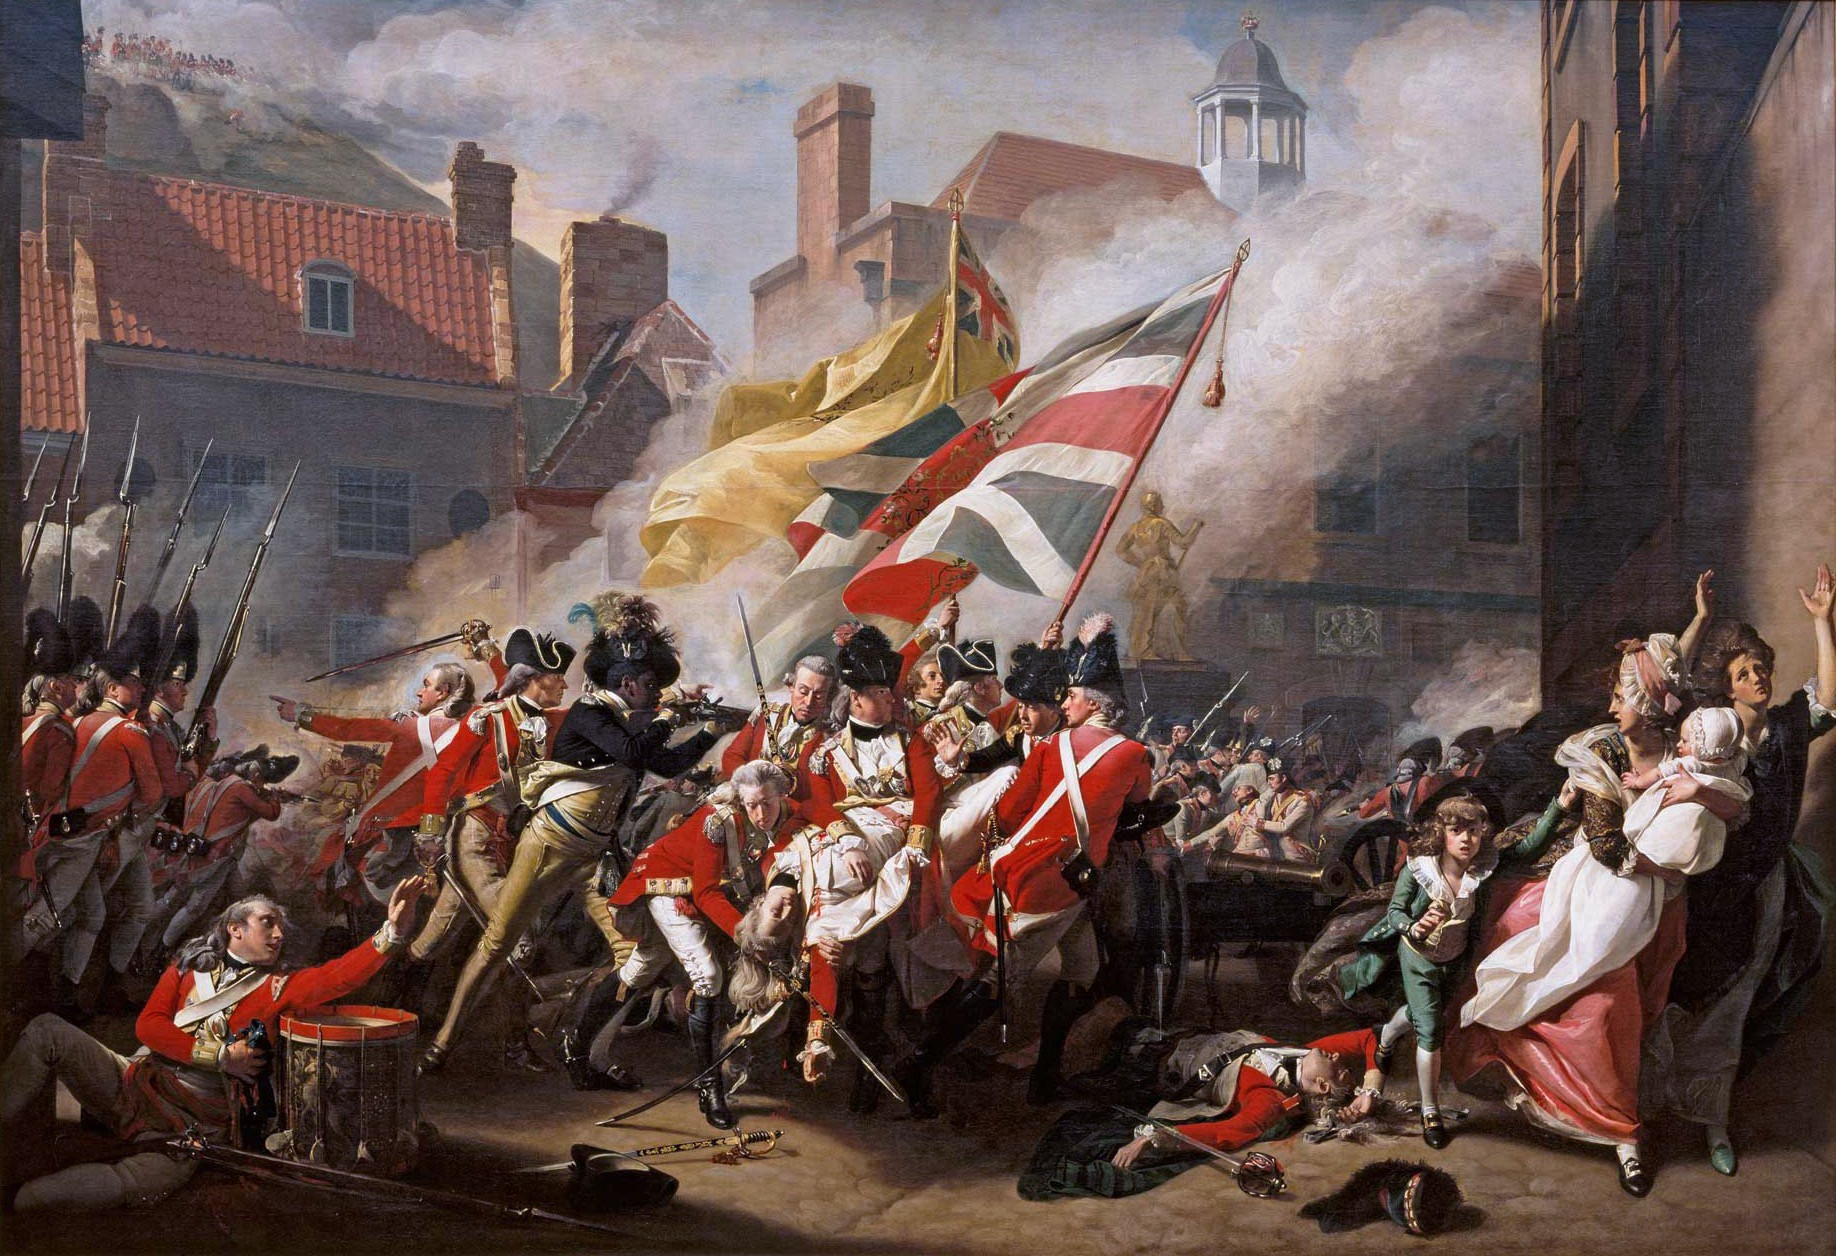 https://i1.wp.com/upload.wikimedia.org/wikipedia/commons/d/d4/John_Singleton_Copley_001.jpg